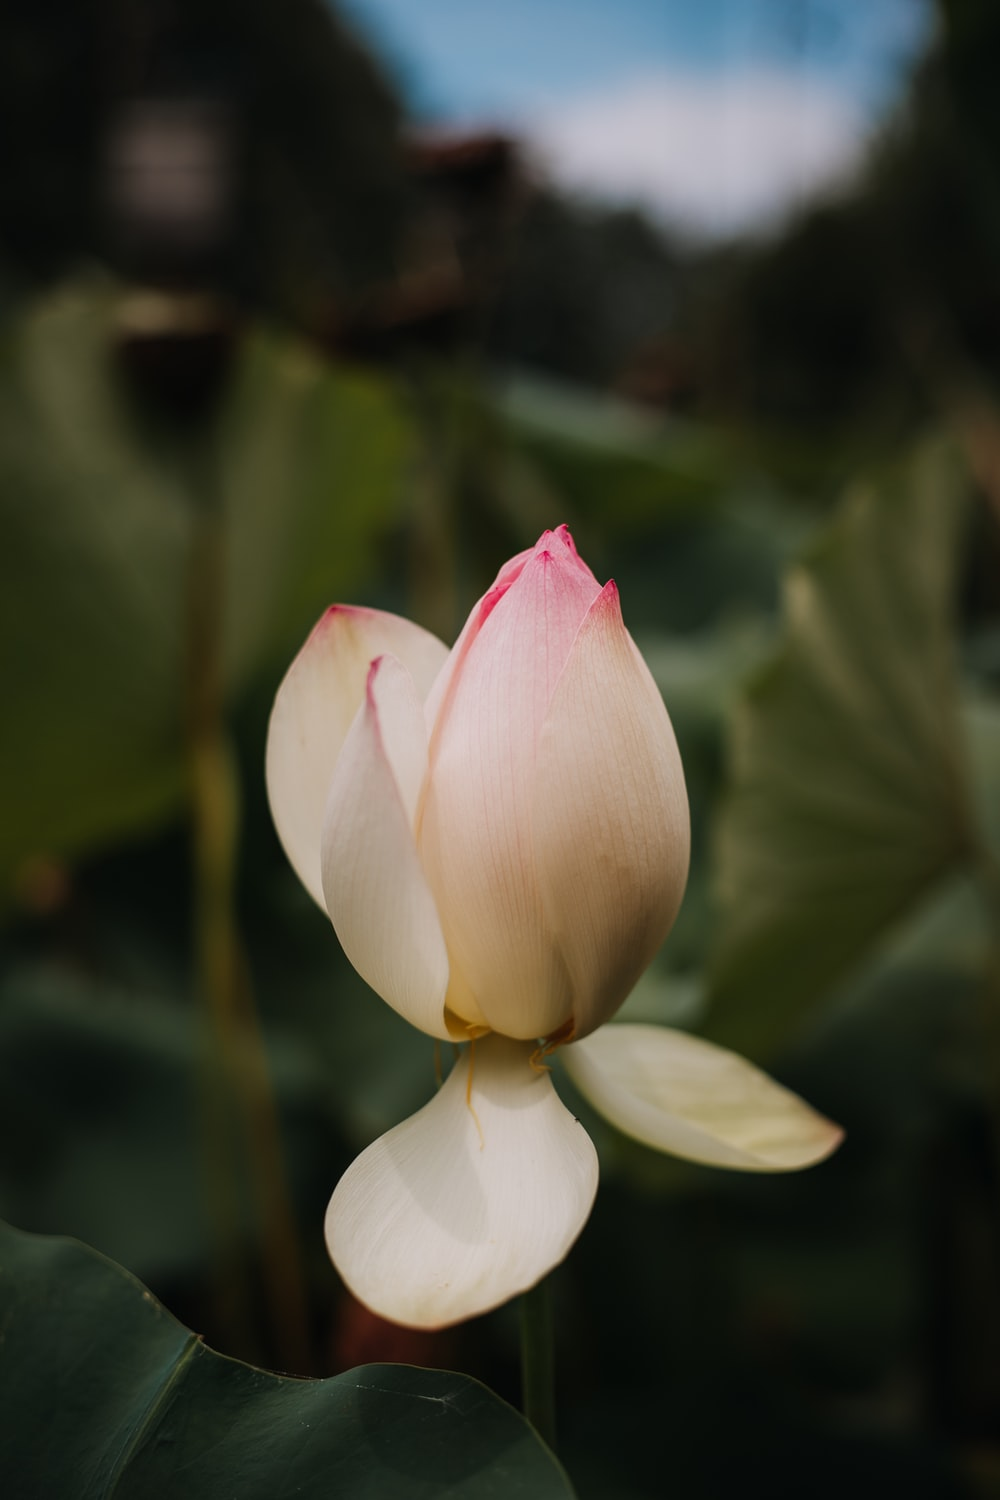 white and pink lotus flower in bloom during daytime